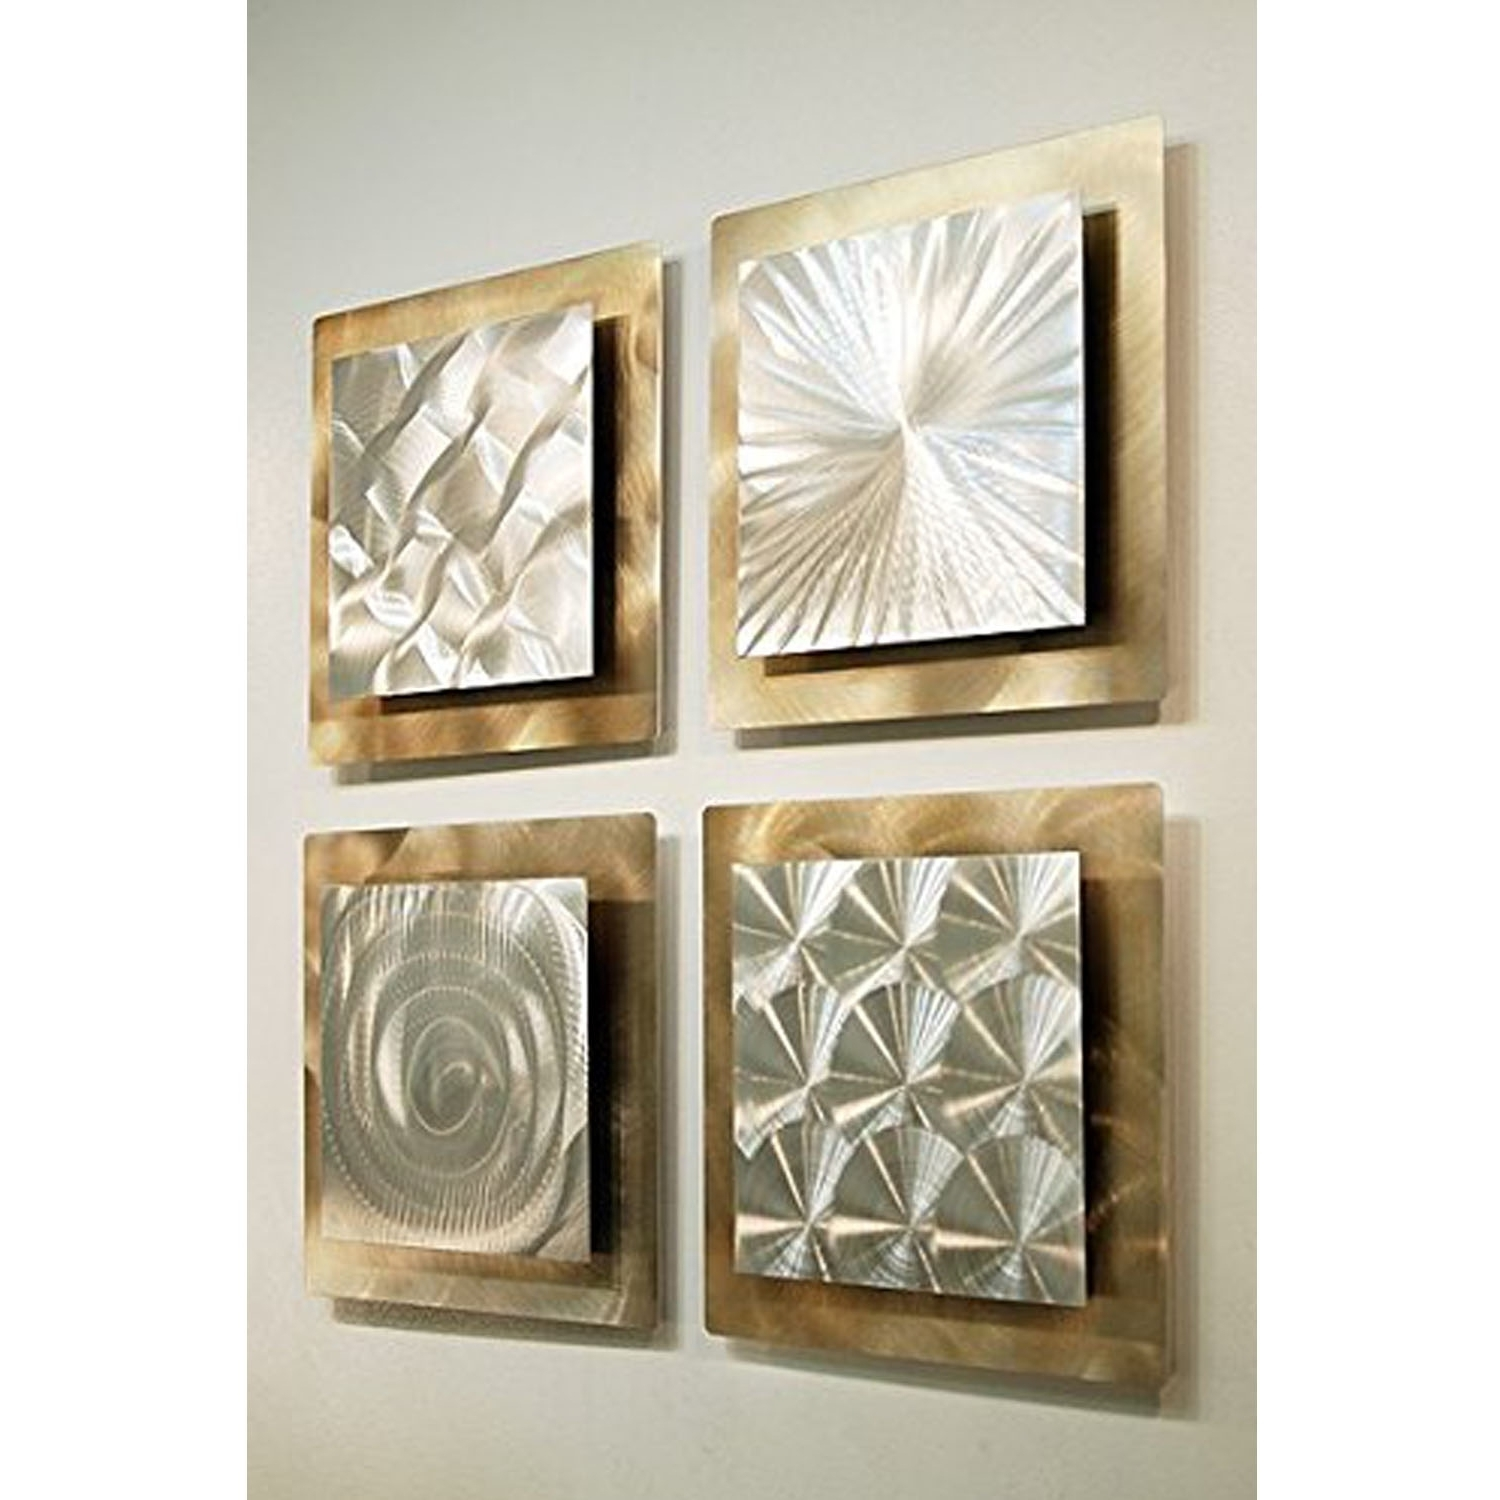 2018 Metal Wall Art In Metal Art (View 13 of 15)